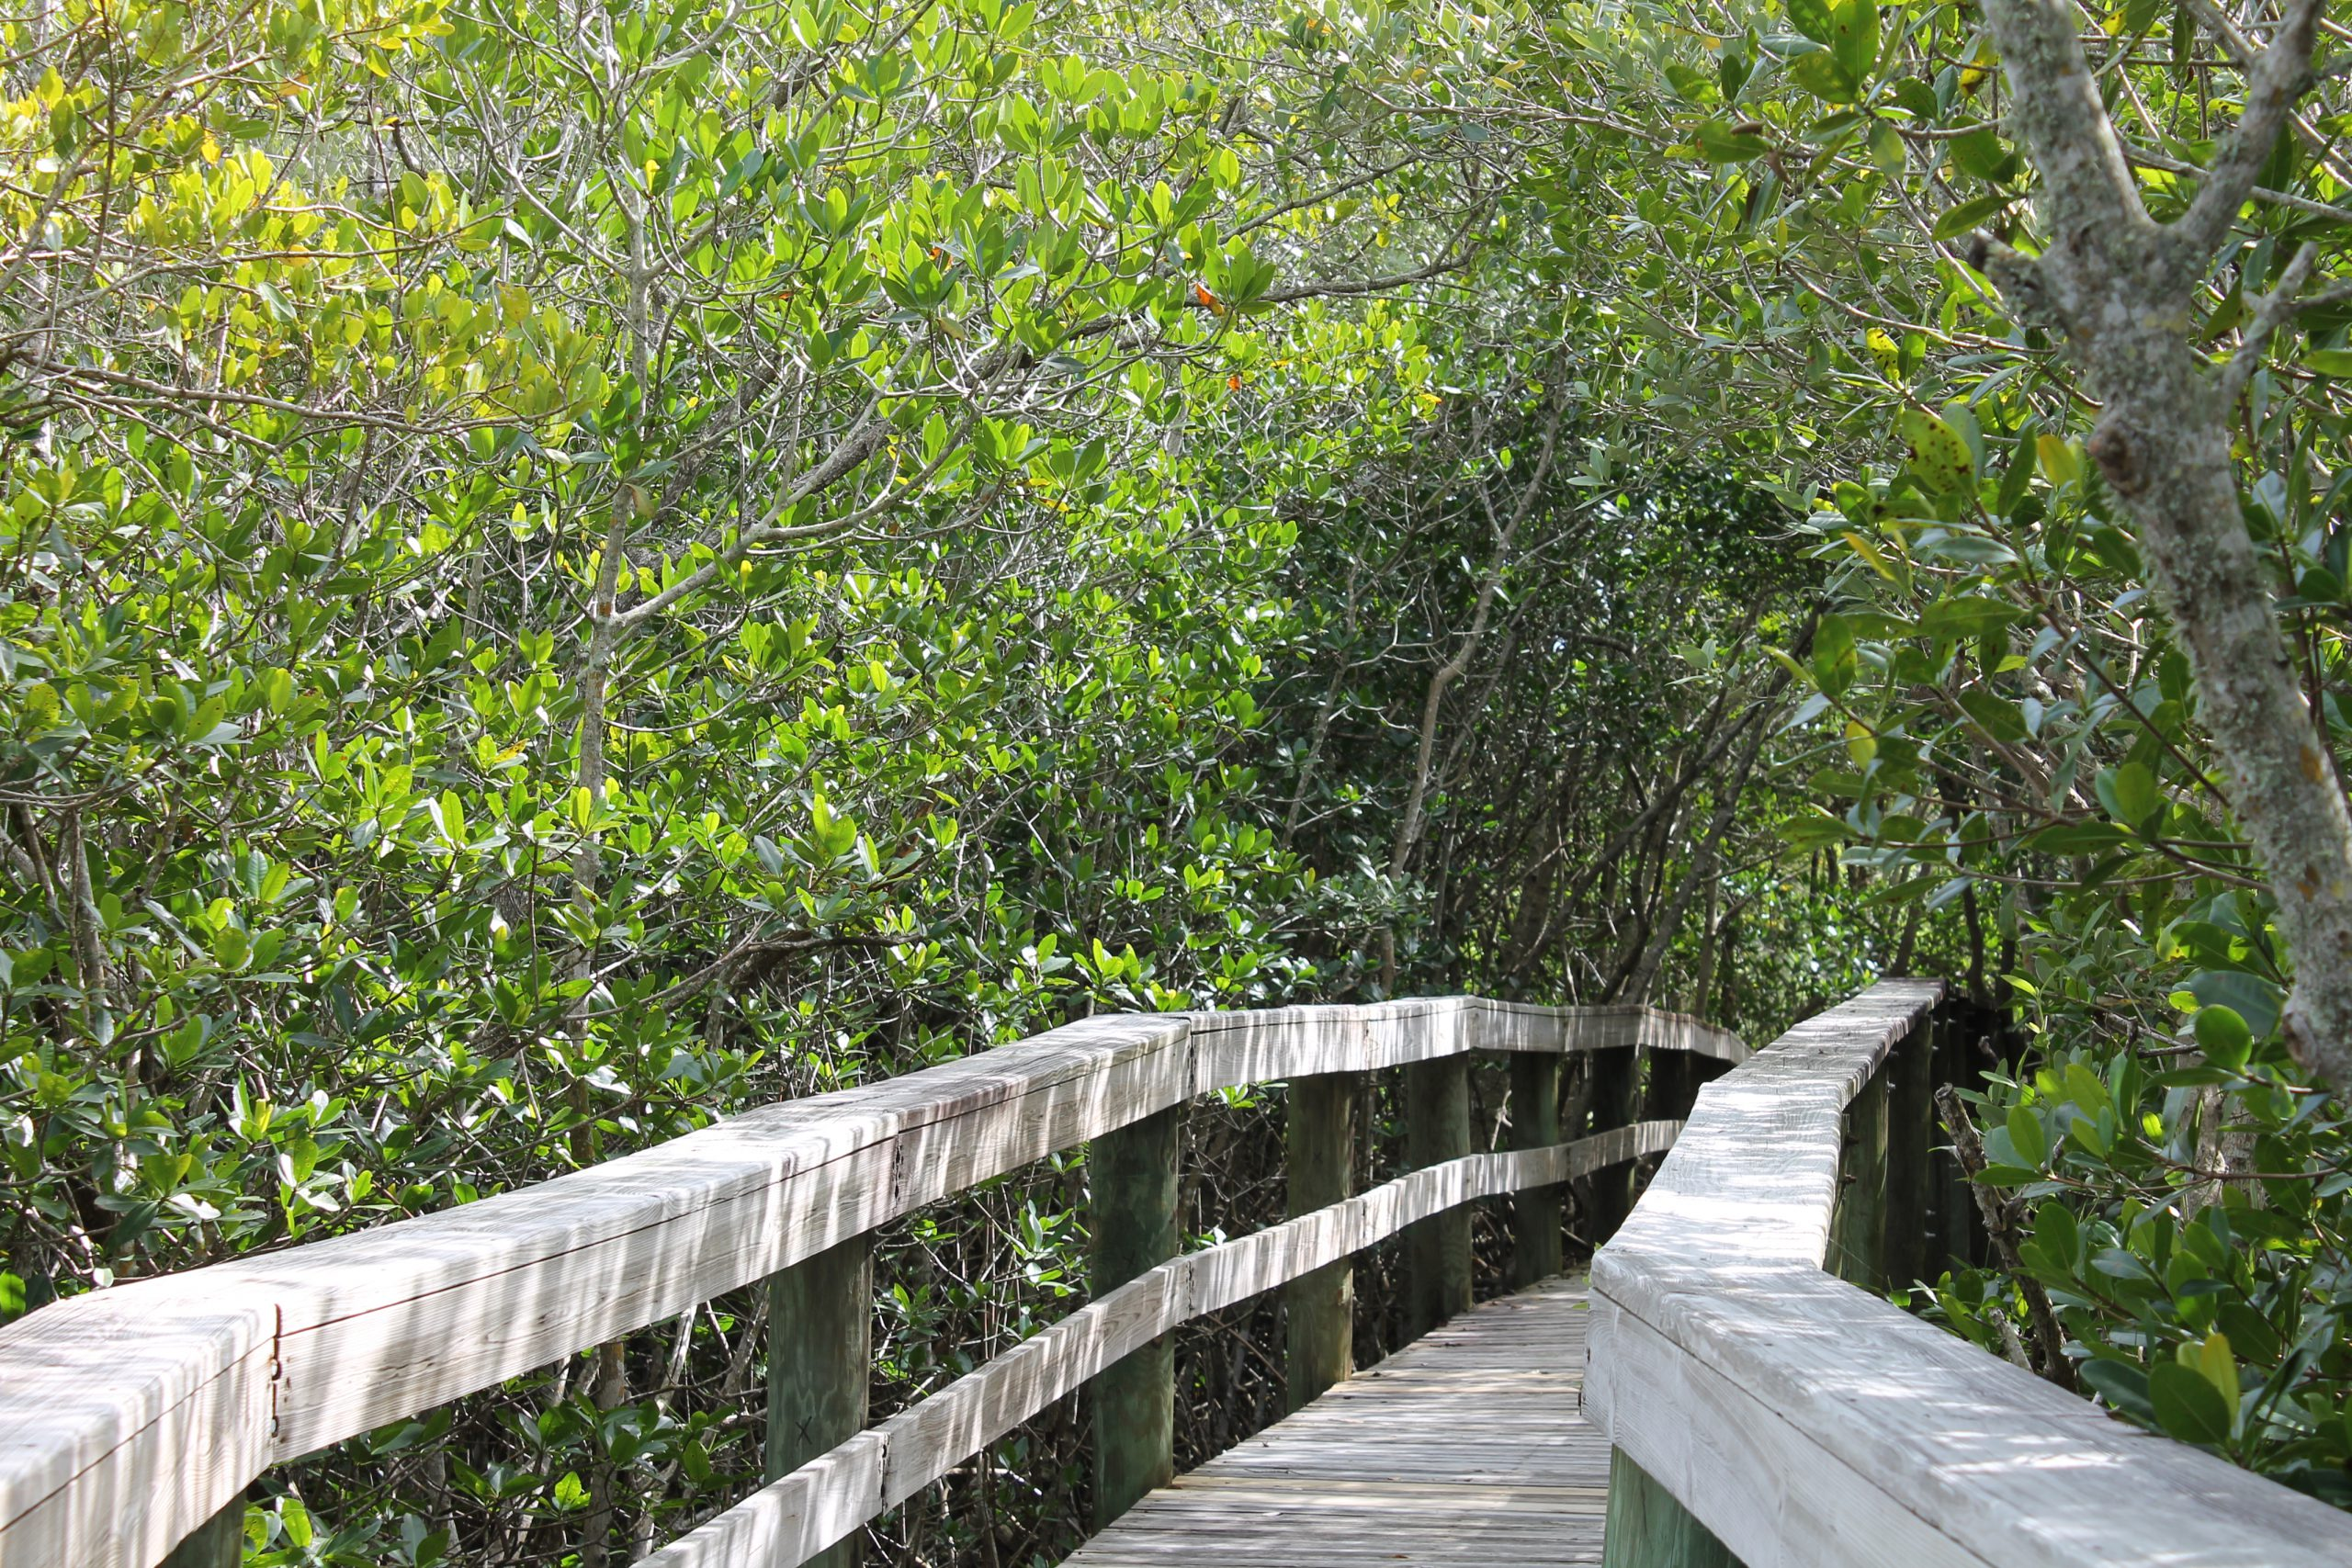 Wooden boardwalk through the mangroves